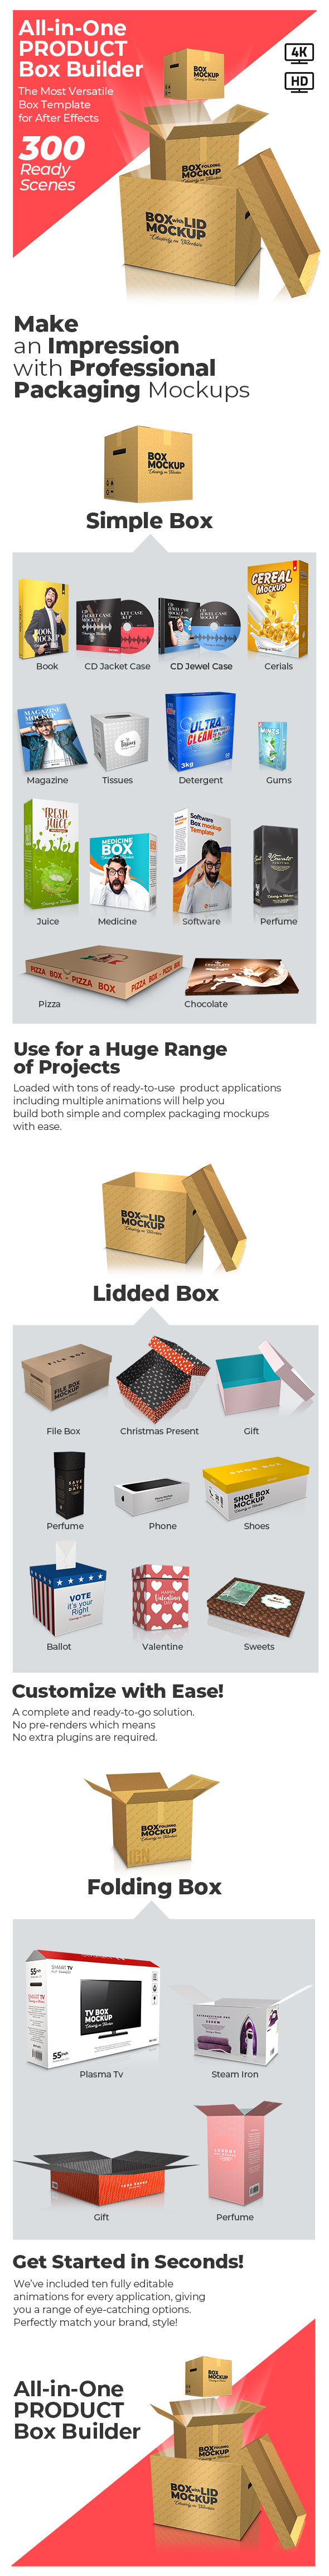 All-in-One Product Box Builder - 8